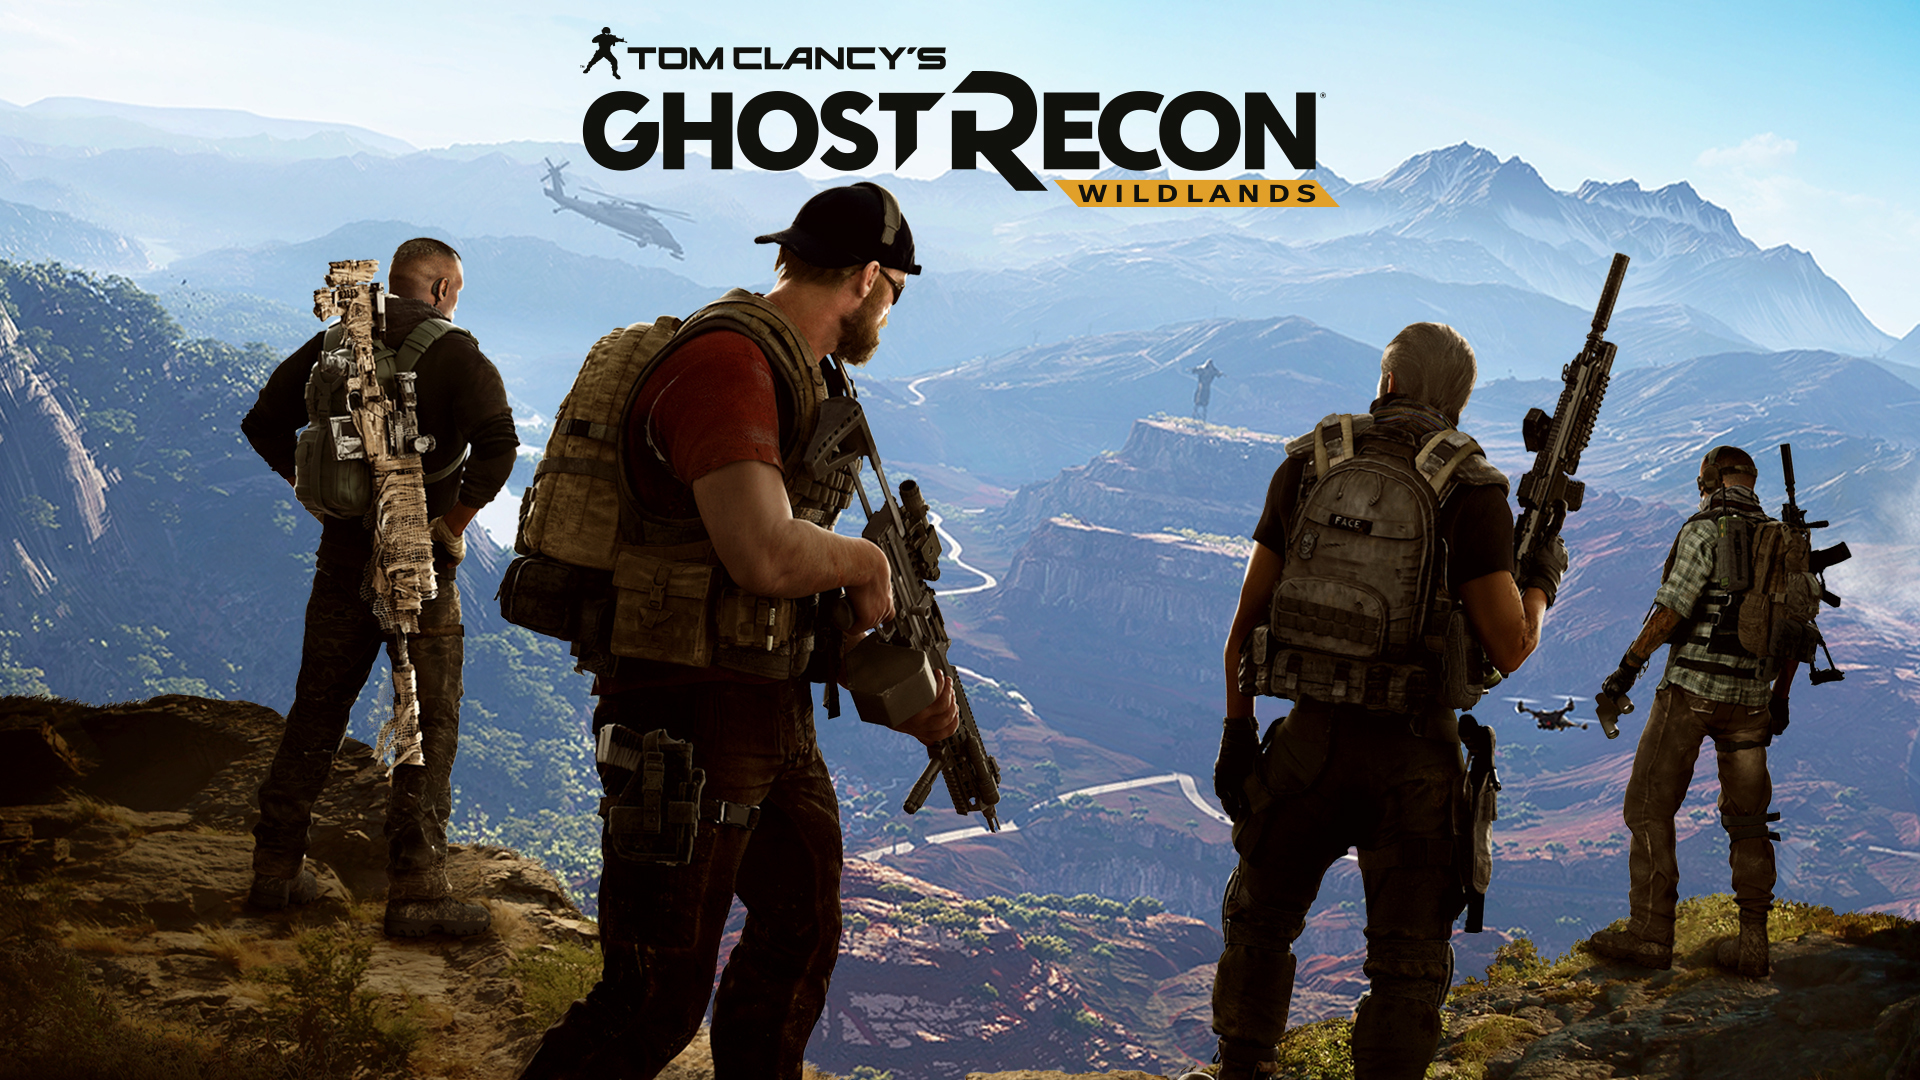 Tom Clancy's Ghost Recon: Wildlands telecharger gratuit de PC et Torrent